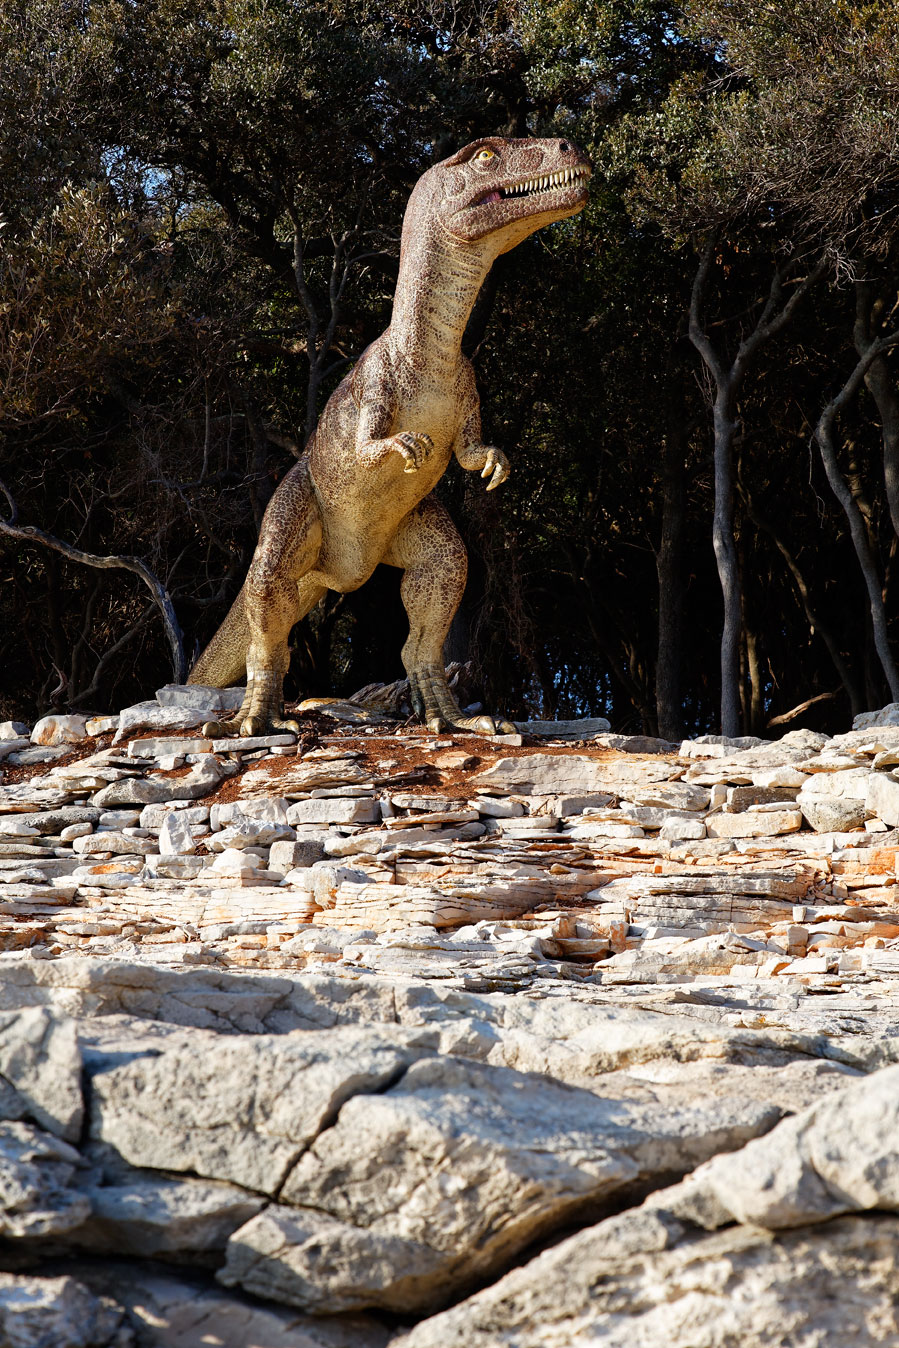 croatia, sea, brijuni, istra, croatia, national park, coast, adriatic, dinosaurs